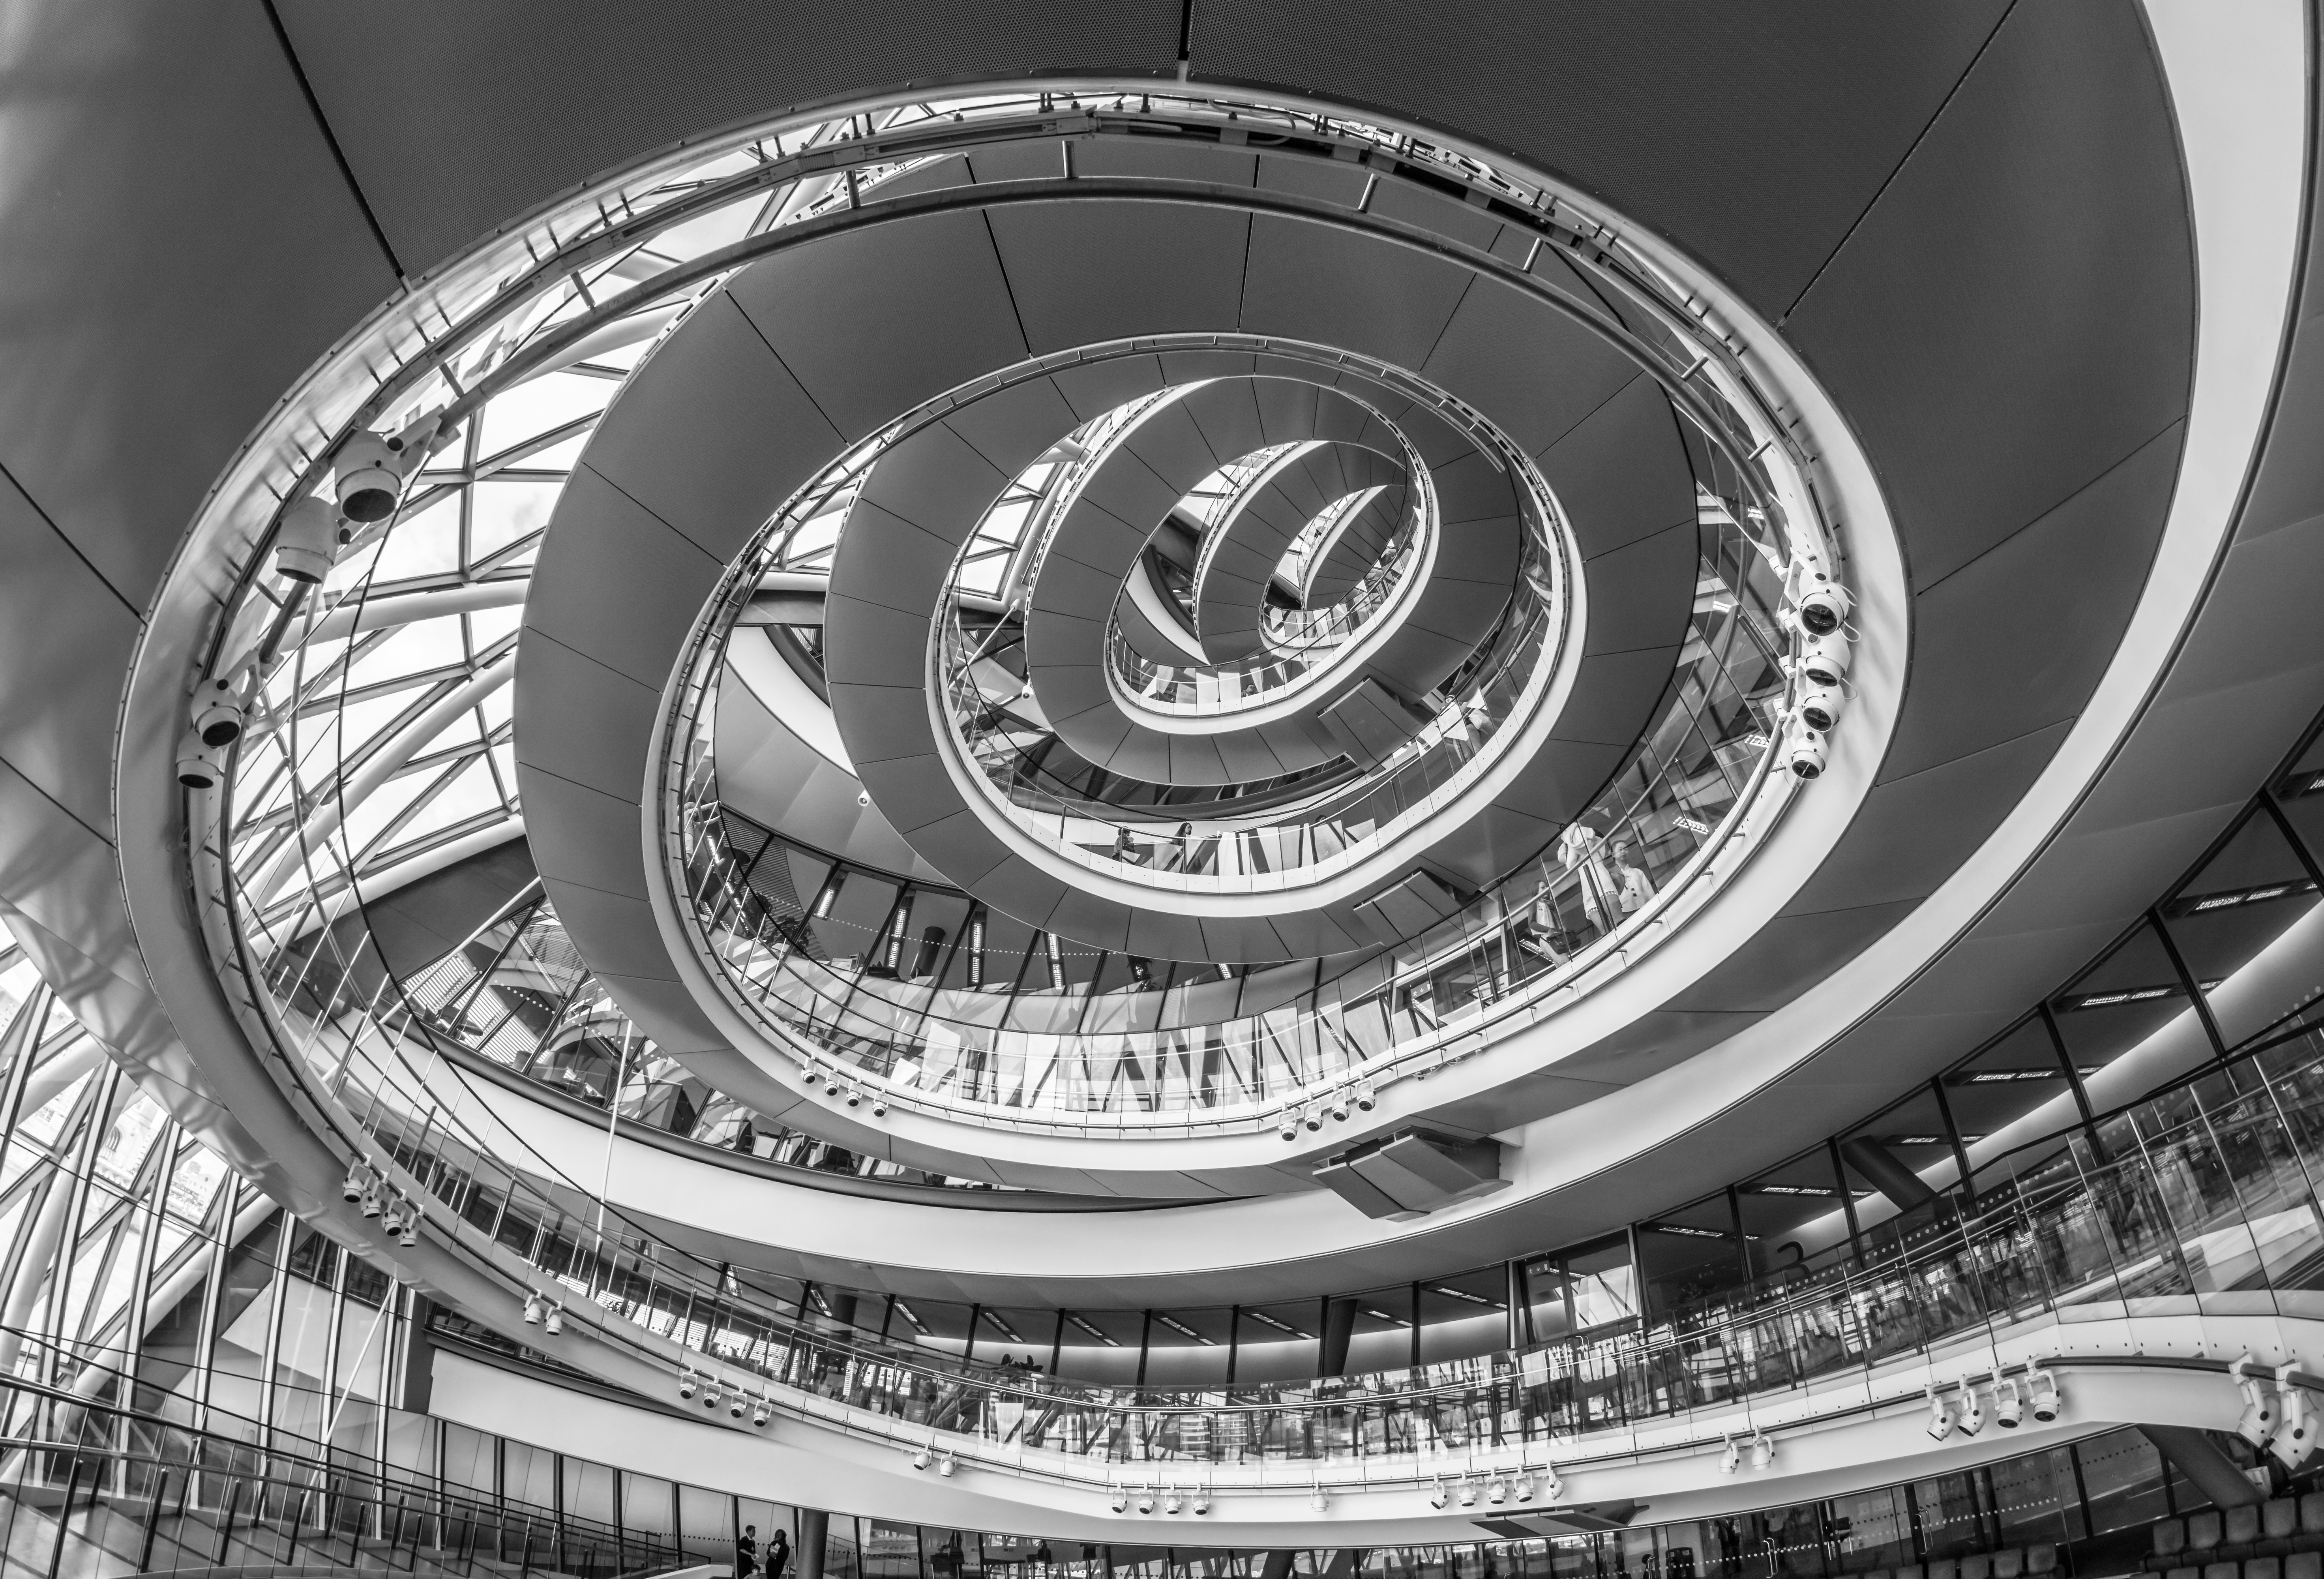 File:City Hall, London, Spiral Staircase - 1 jpg - Wikimedia